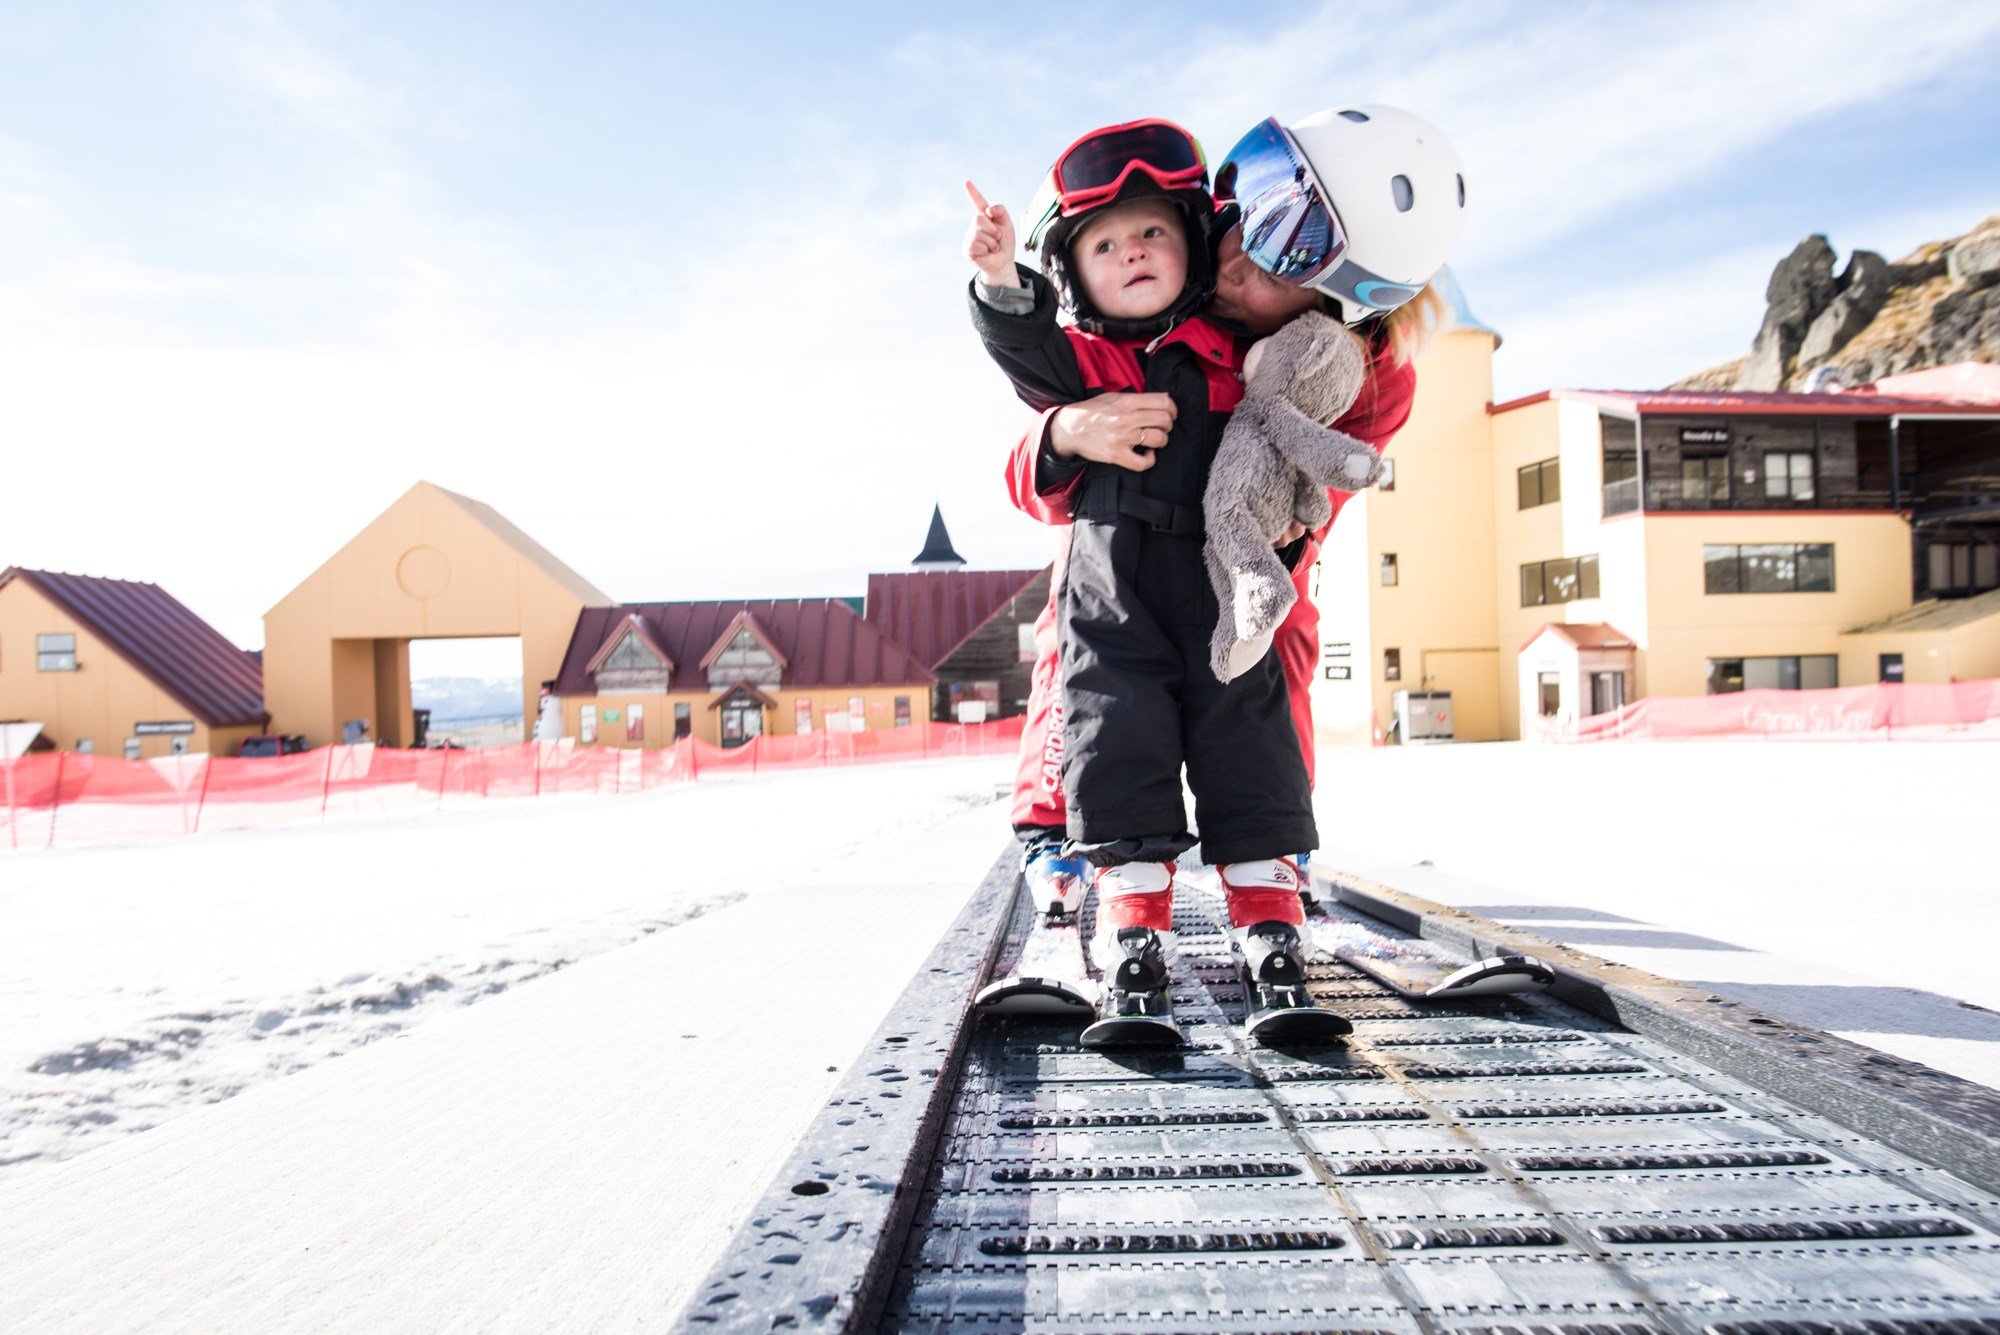 Cardrona Alpine Resort learn to ski childcare